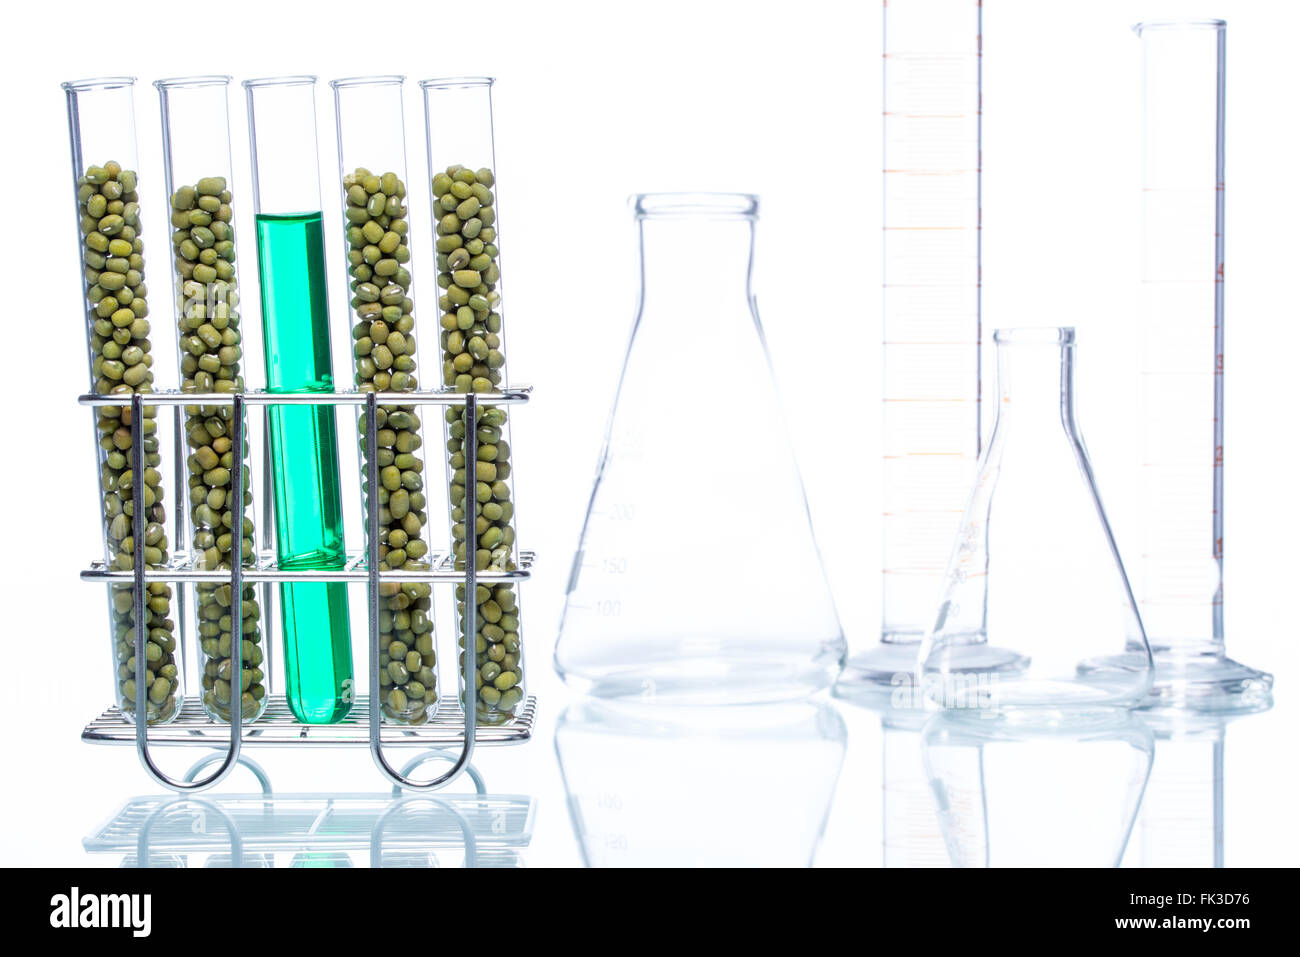 Mung Bean Genetically Modified Plant Cell Biotechnology Stock Photo Tags Of A Diagram